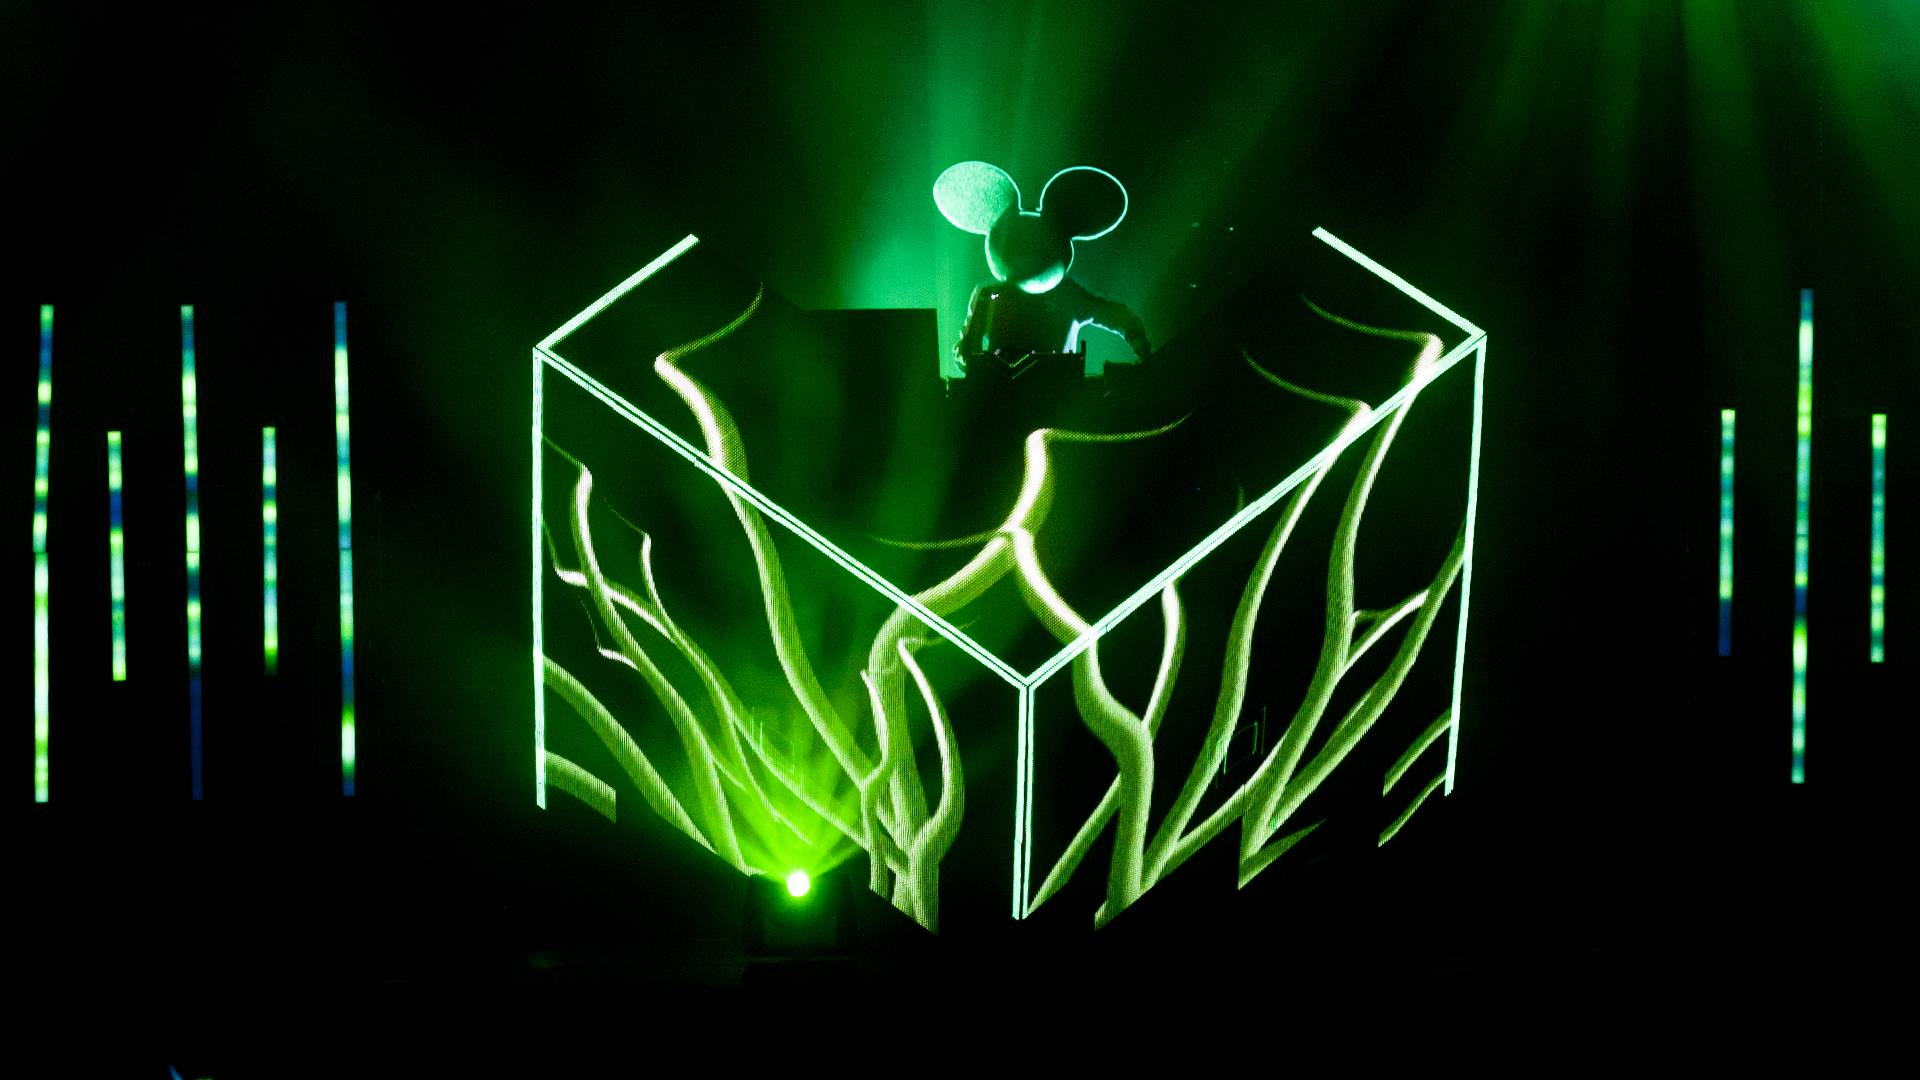 Deadmau5 Wallpapers HD - Wallpaper Cave